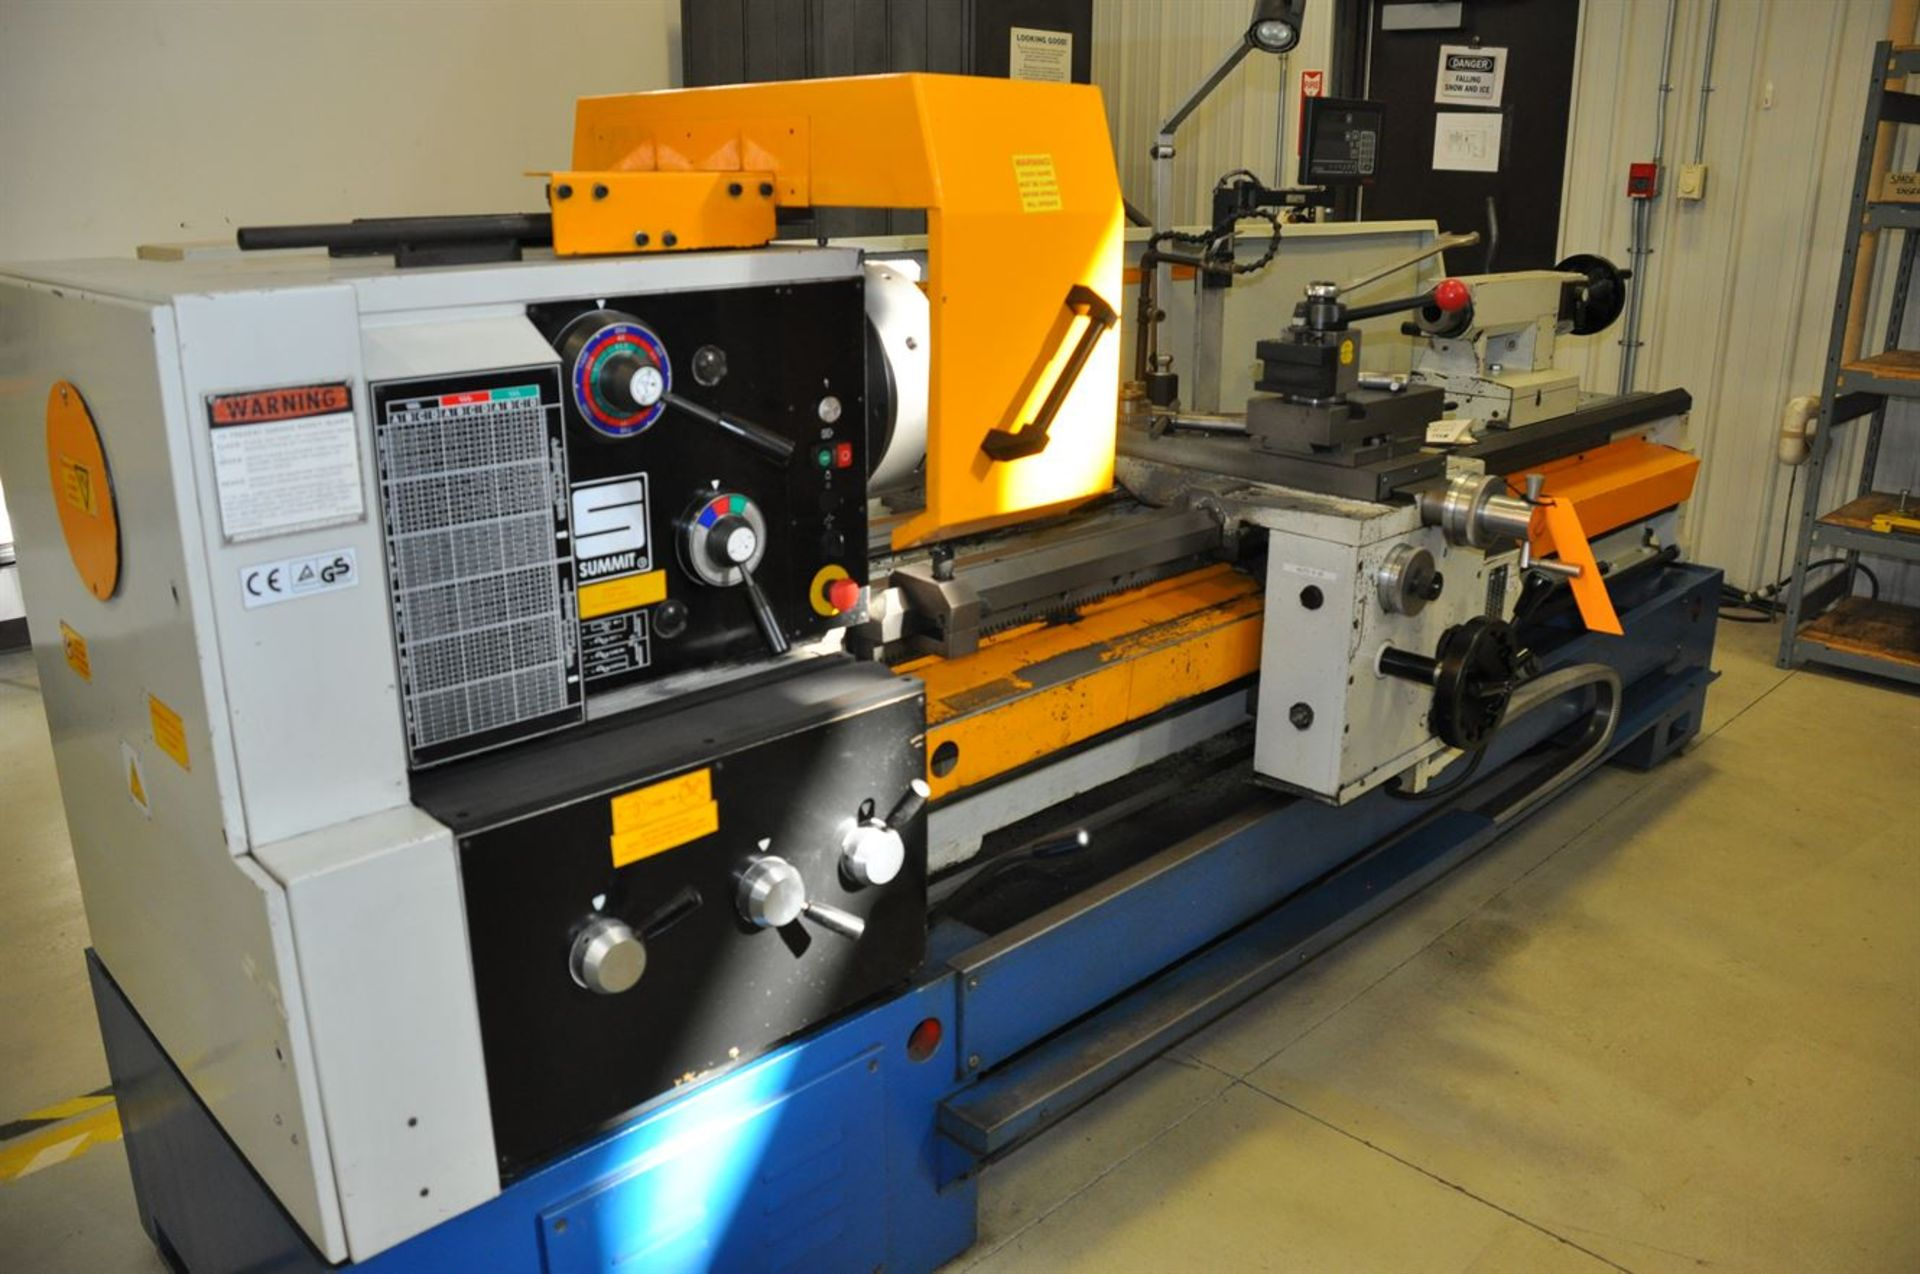 2012 SUMMIT 20X80B Gap Bed Engine Lathe, s/n 8052, w/ Taper Attachment, Quick Change Tool Post, - Image 2 of 5